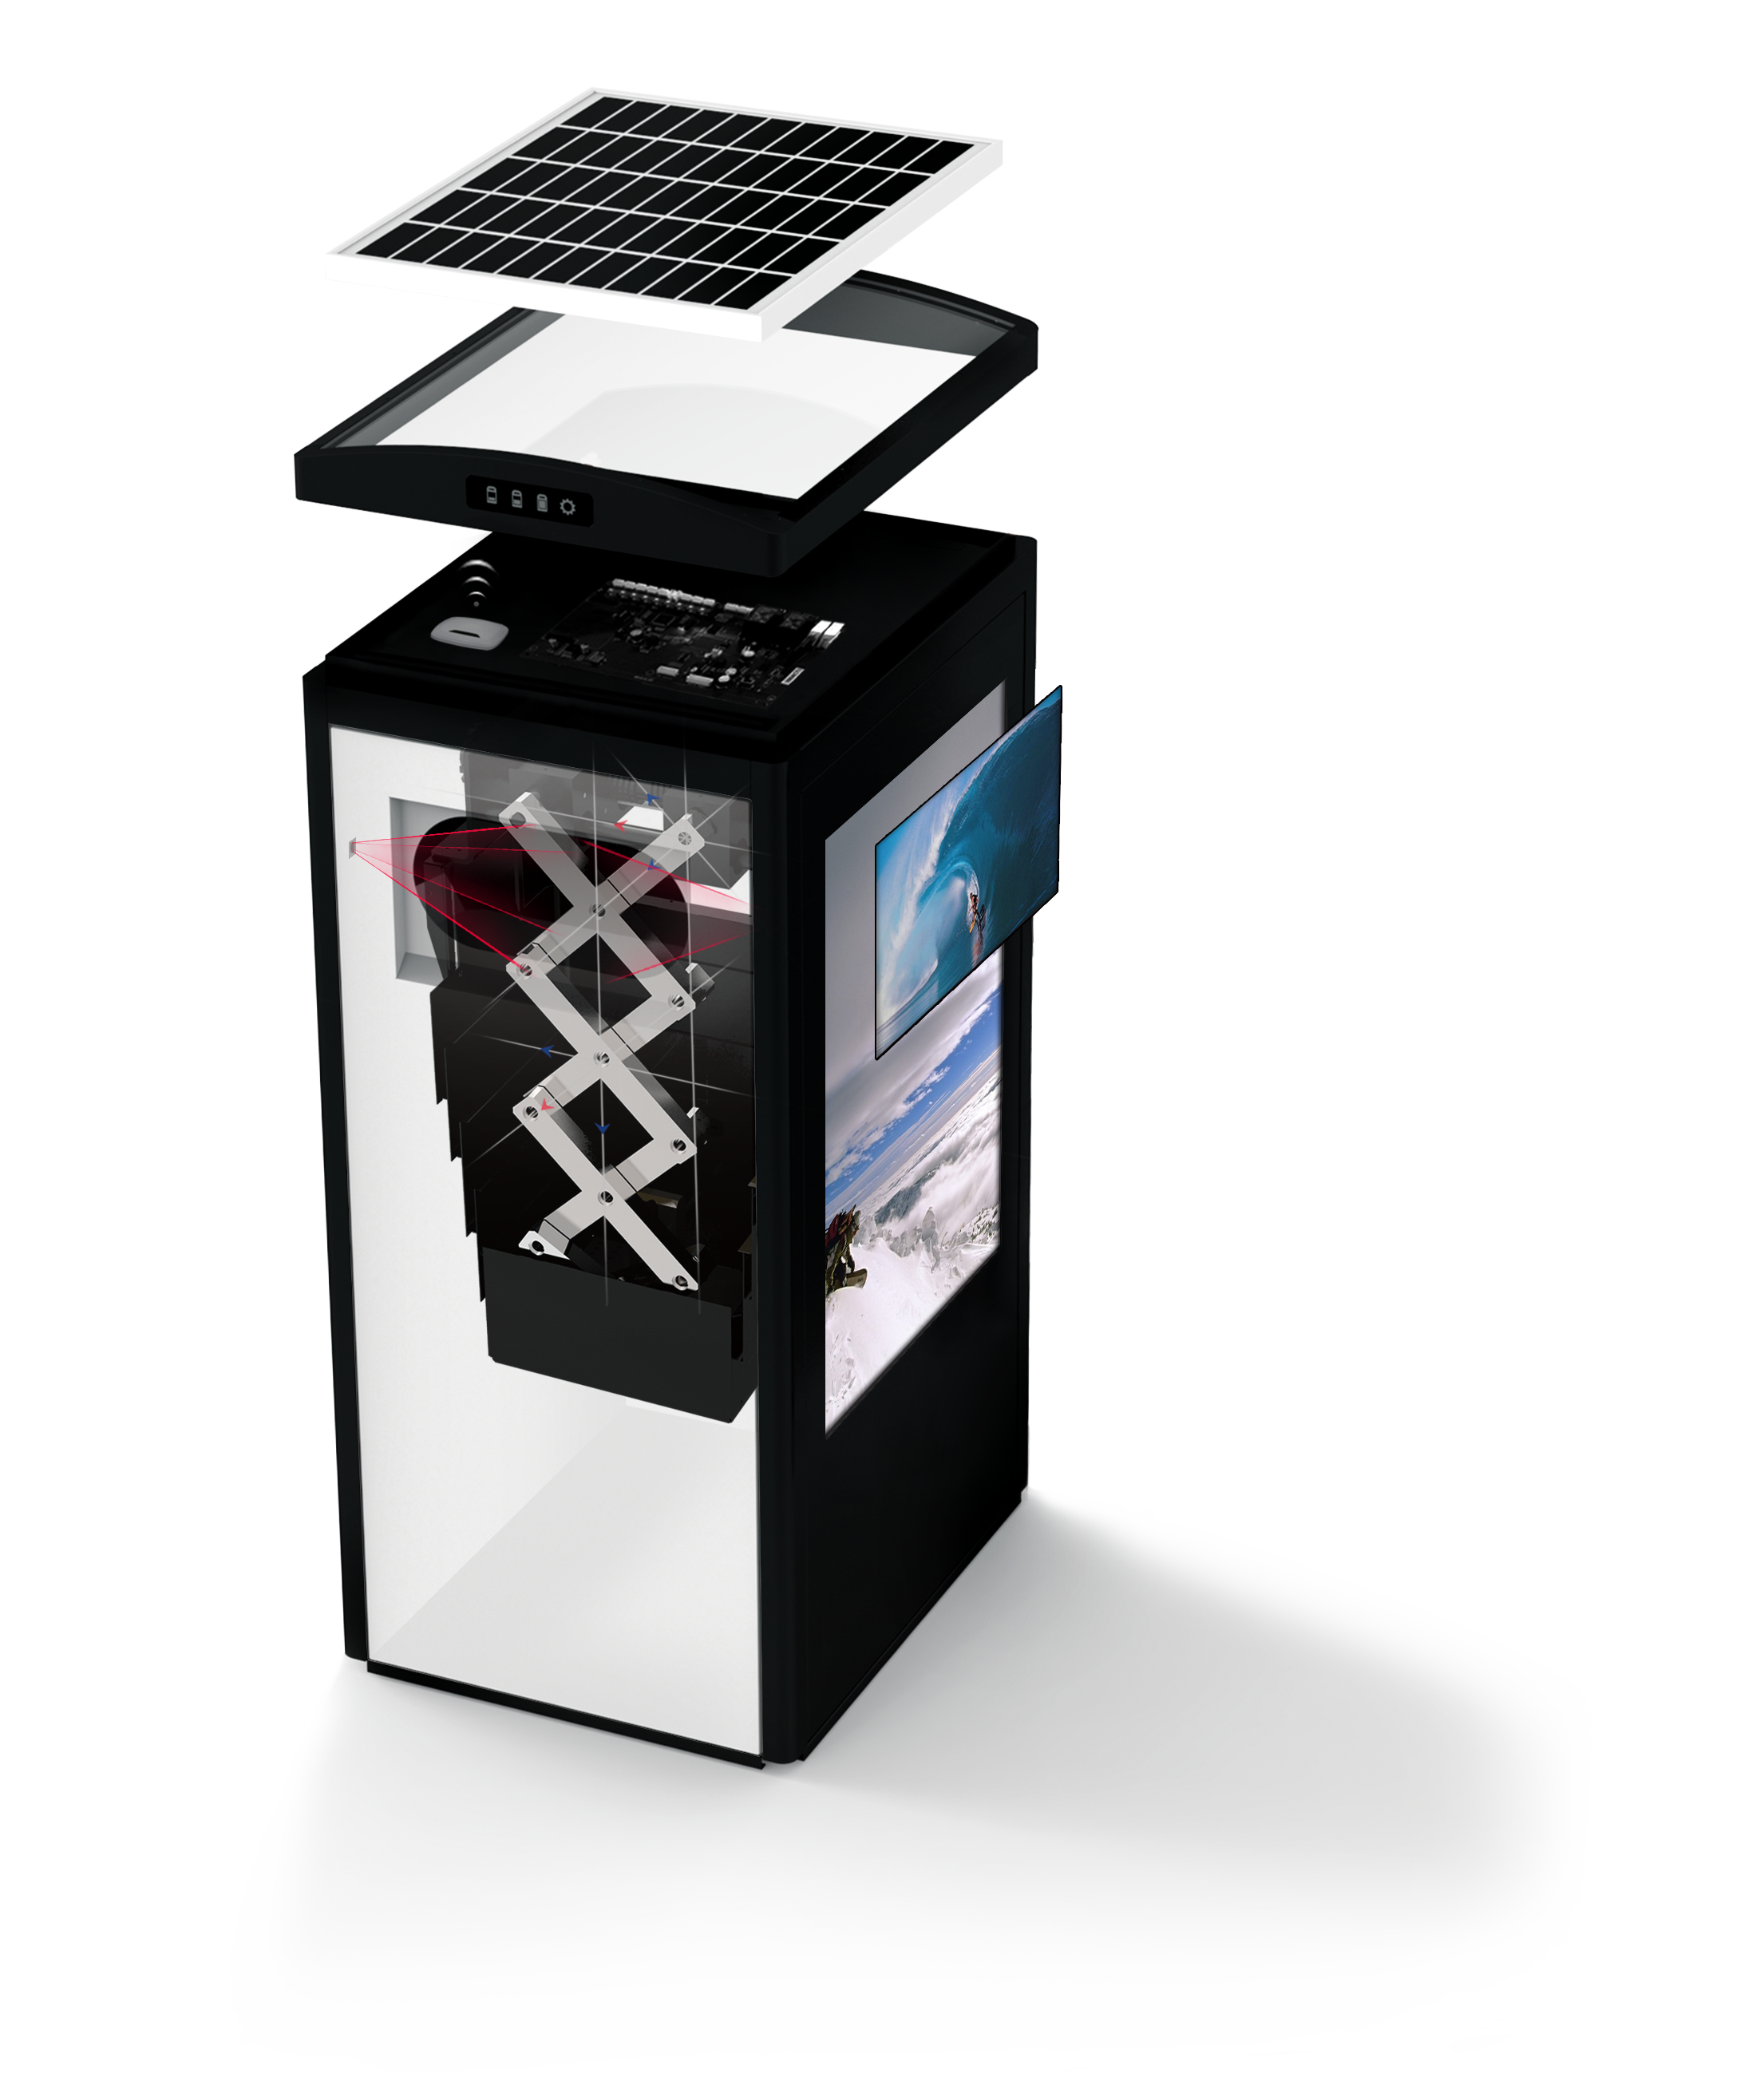 Solar Powered Trash Compactor Cleancube Ecube Labs